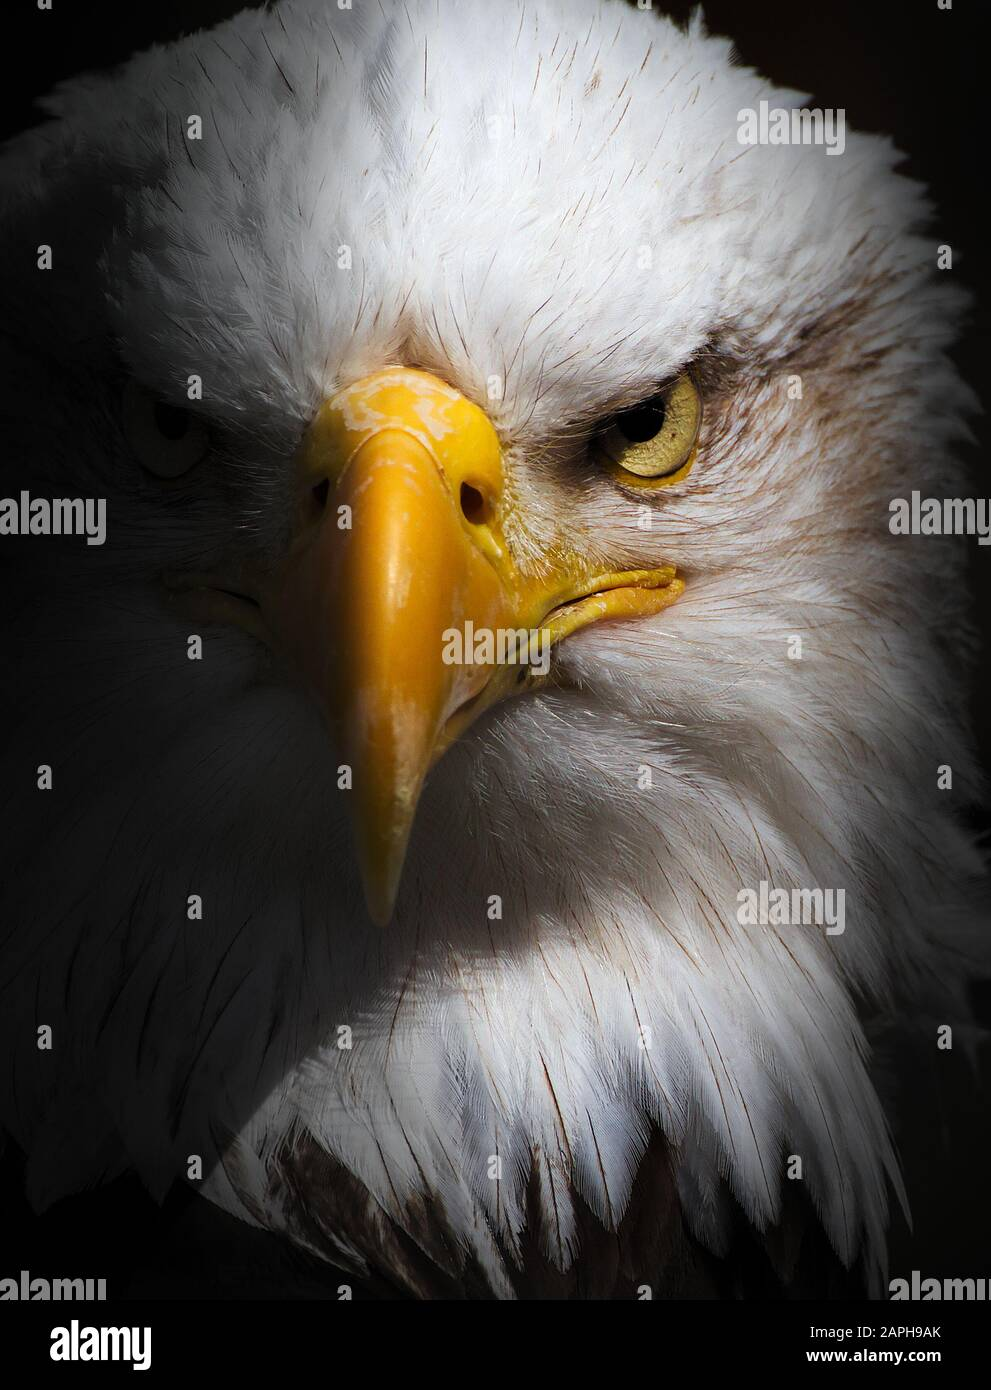 Bald Eagle Stare. Front view of a headshot of a Bald Eagle, Haliaeetus leucocephalus, staring at the camera Stock Photo